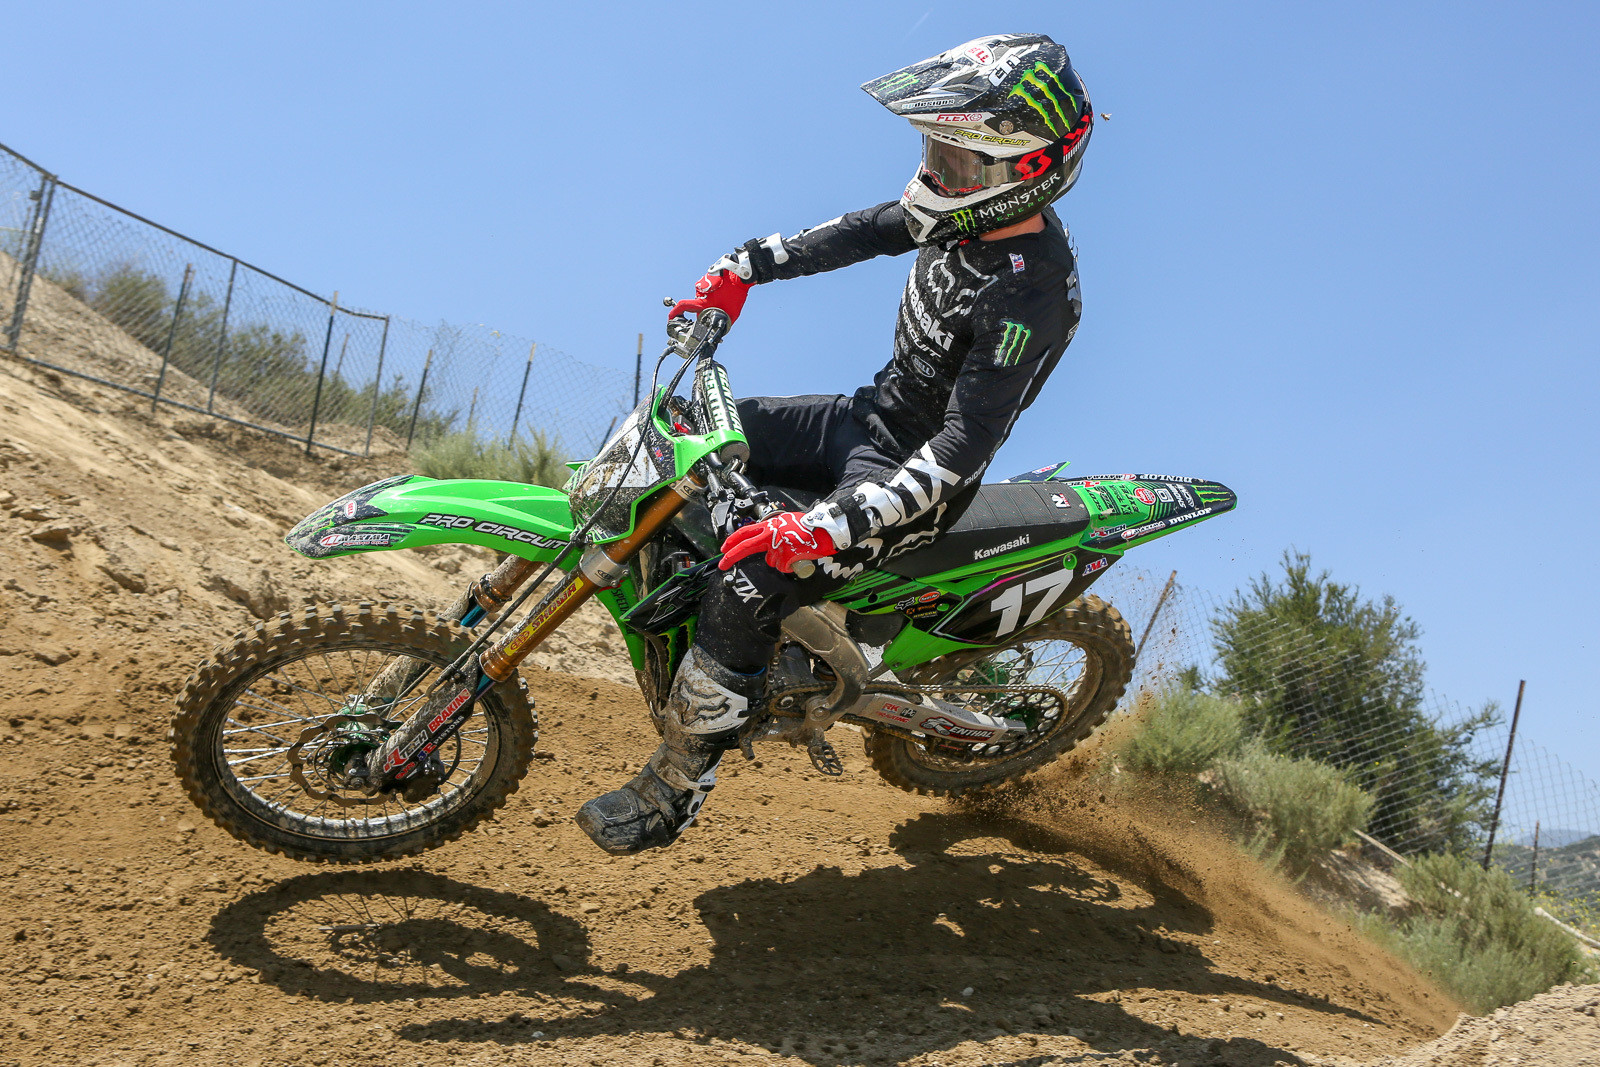 Joey Savatgy will be the healthy vet on the team for Monster Energy Pro Circuit Kawasaki as they head into the Nationals.